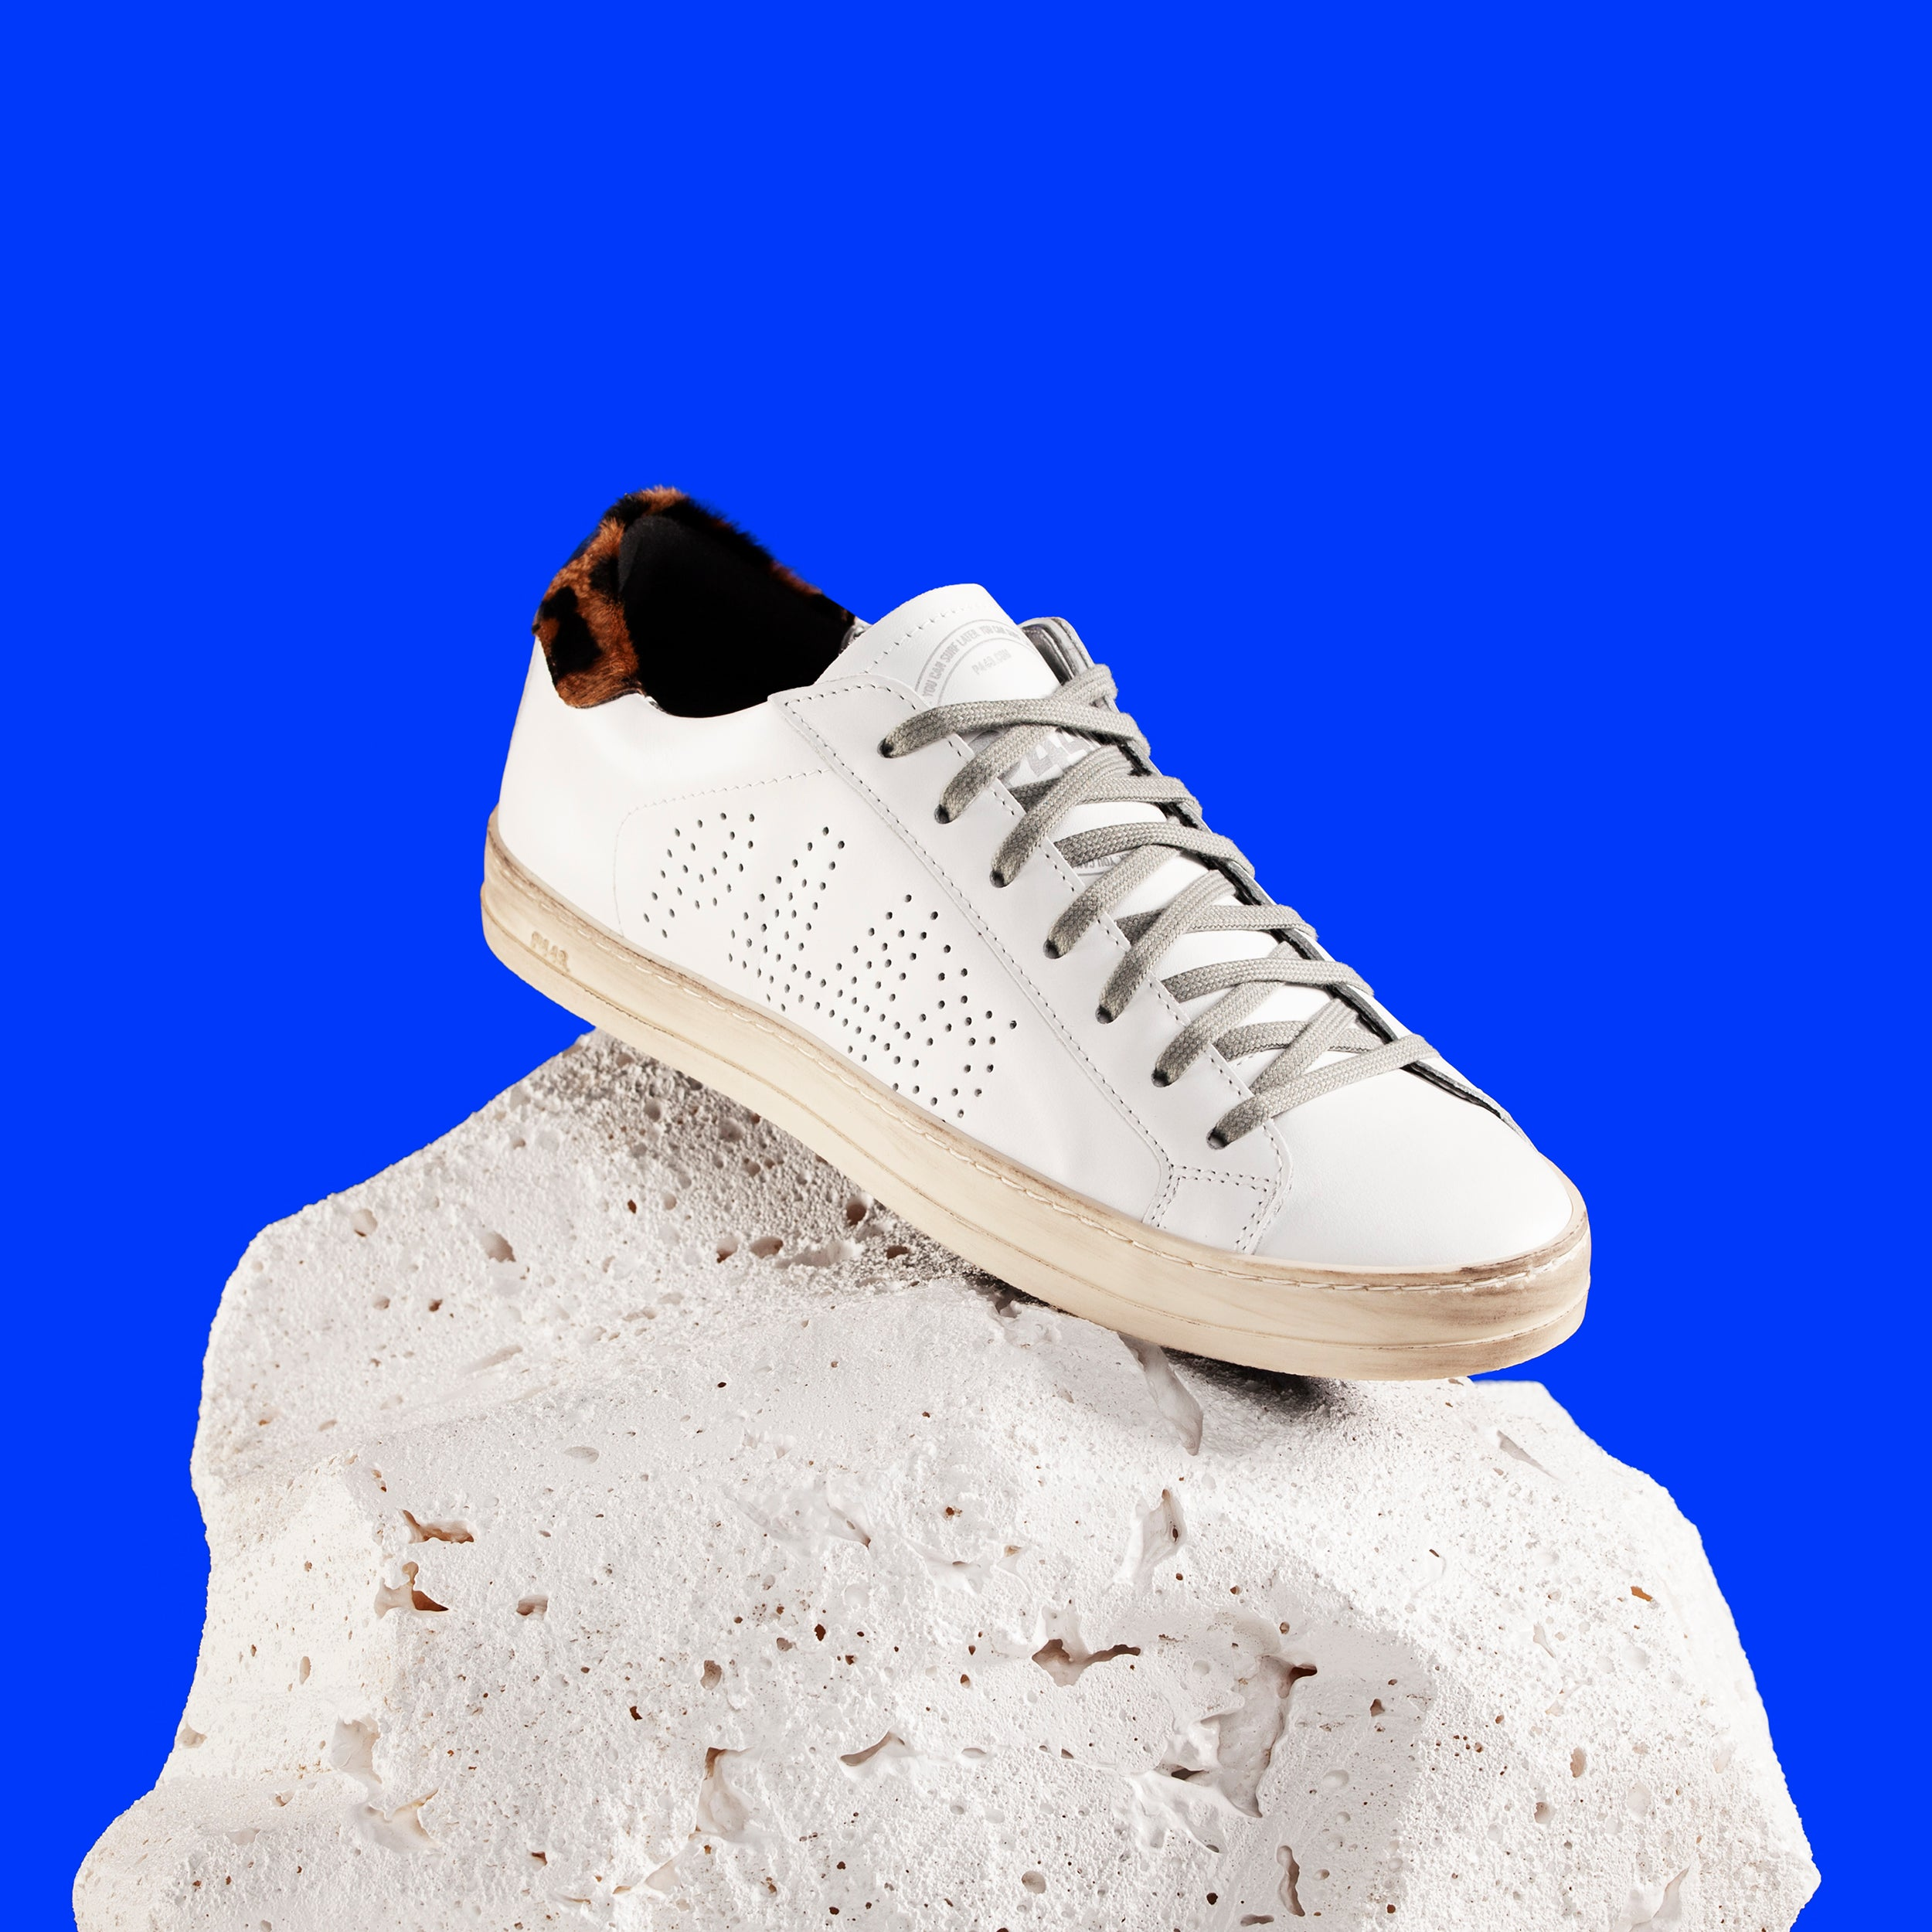 John Low-Top Sneaker in White/Cleo - Styled